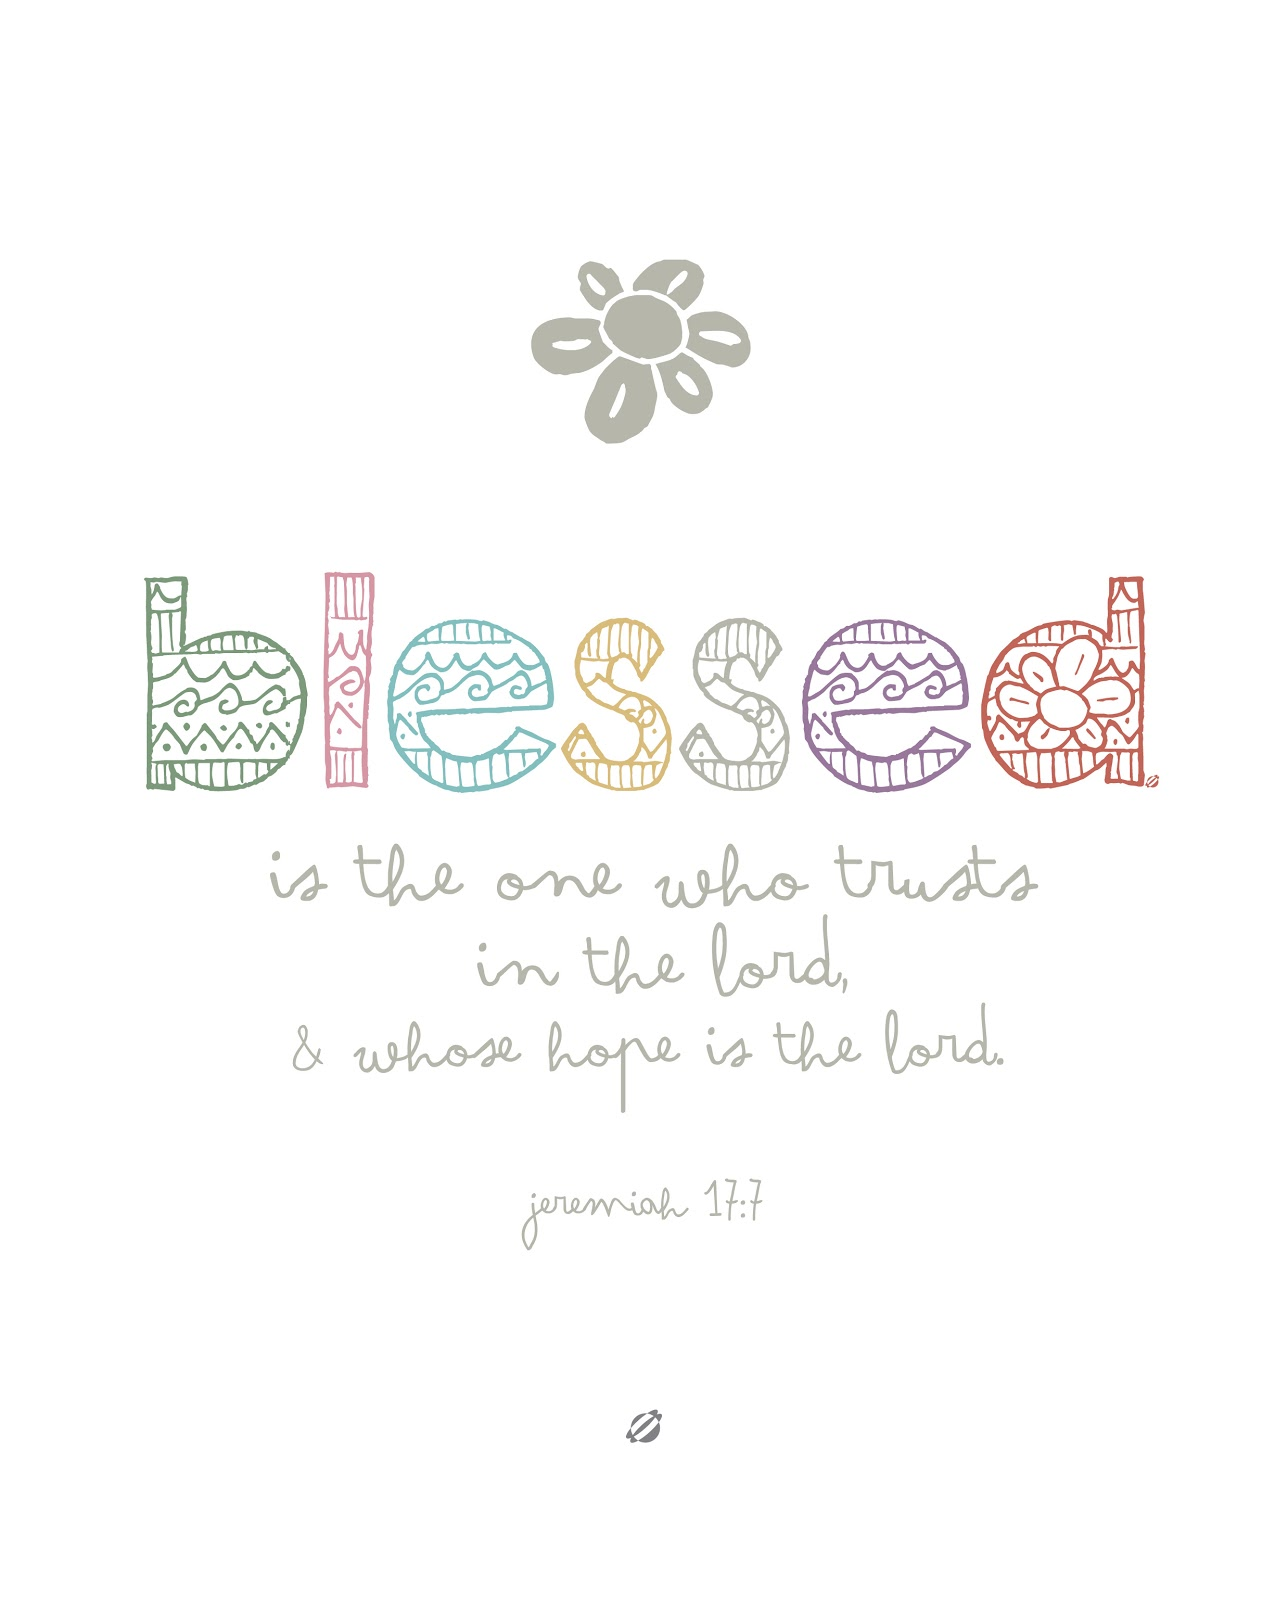 LostBumblebee ©2014 Blessed - Free Printable - For Personal Use Only.